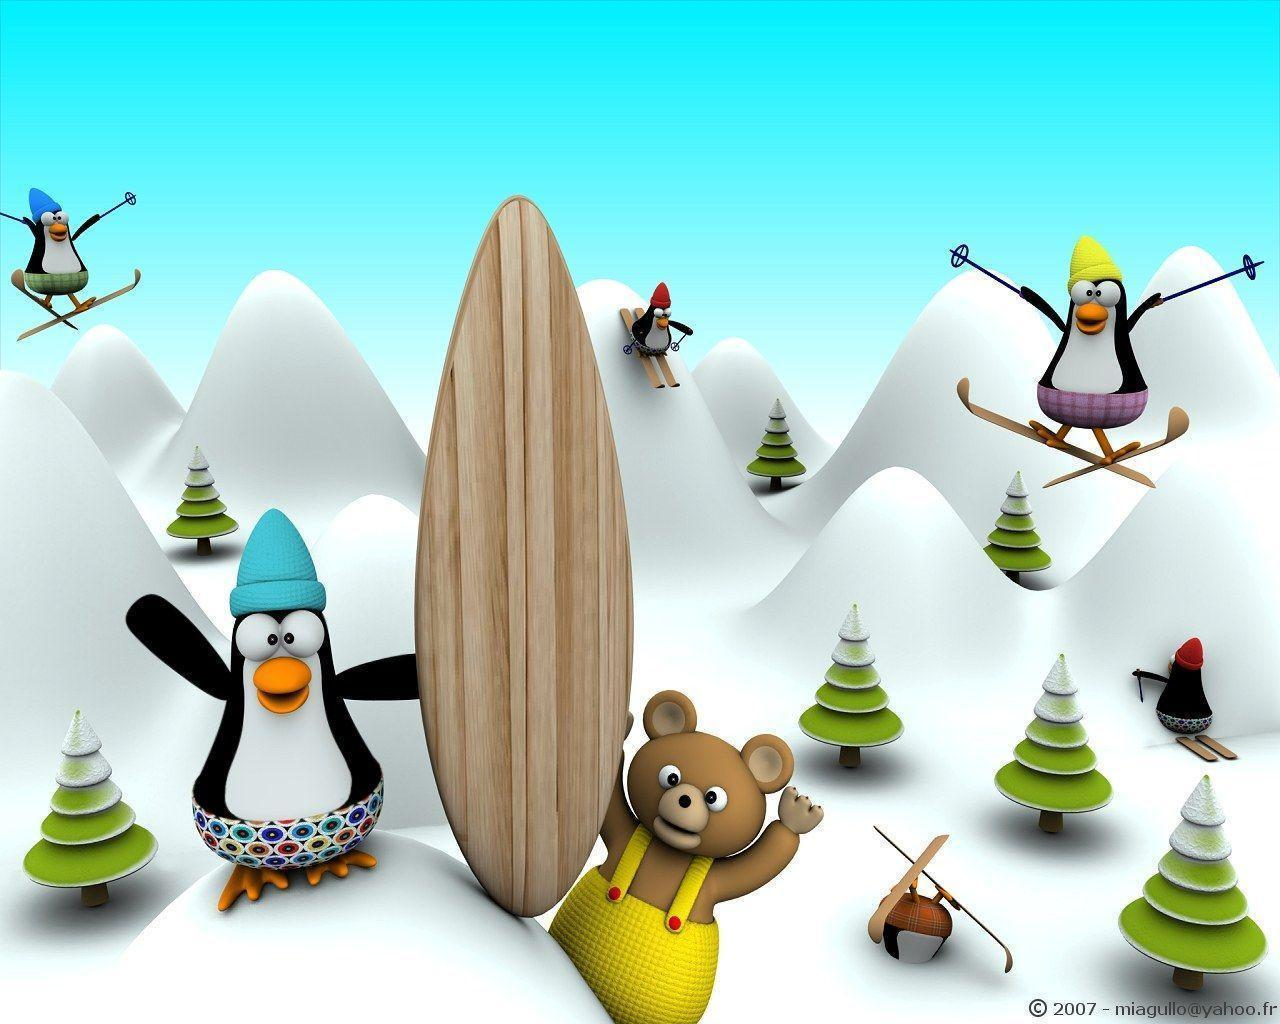 Funny 3D Cartoon Design wallpapers 1280x1024 NO.20 Desktop